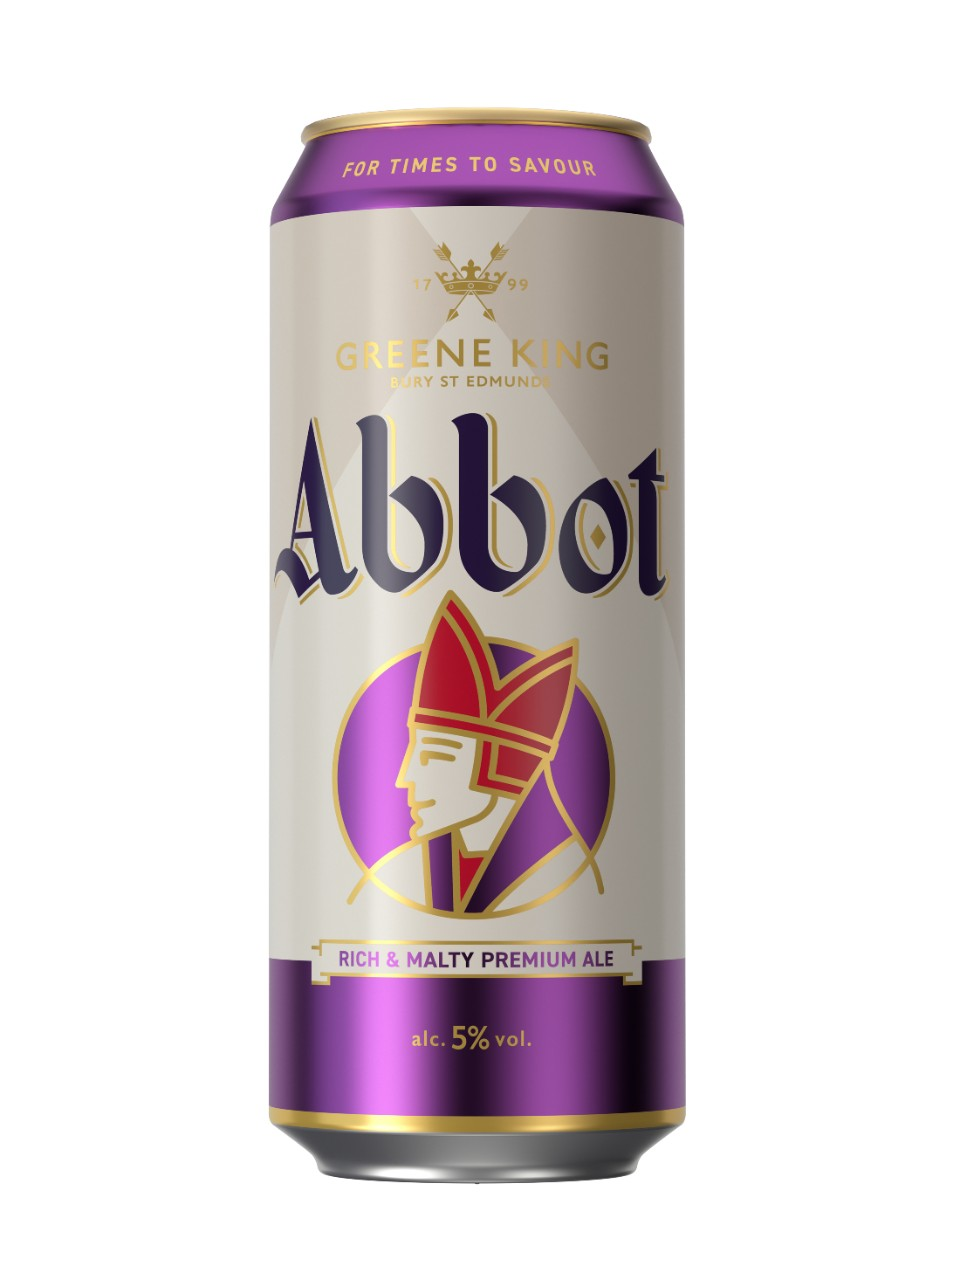 Abbot Ale from LCBO